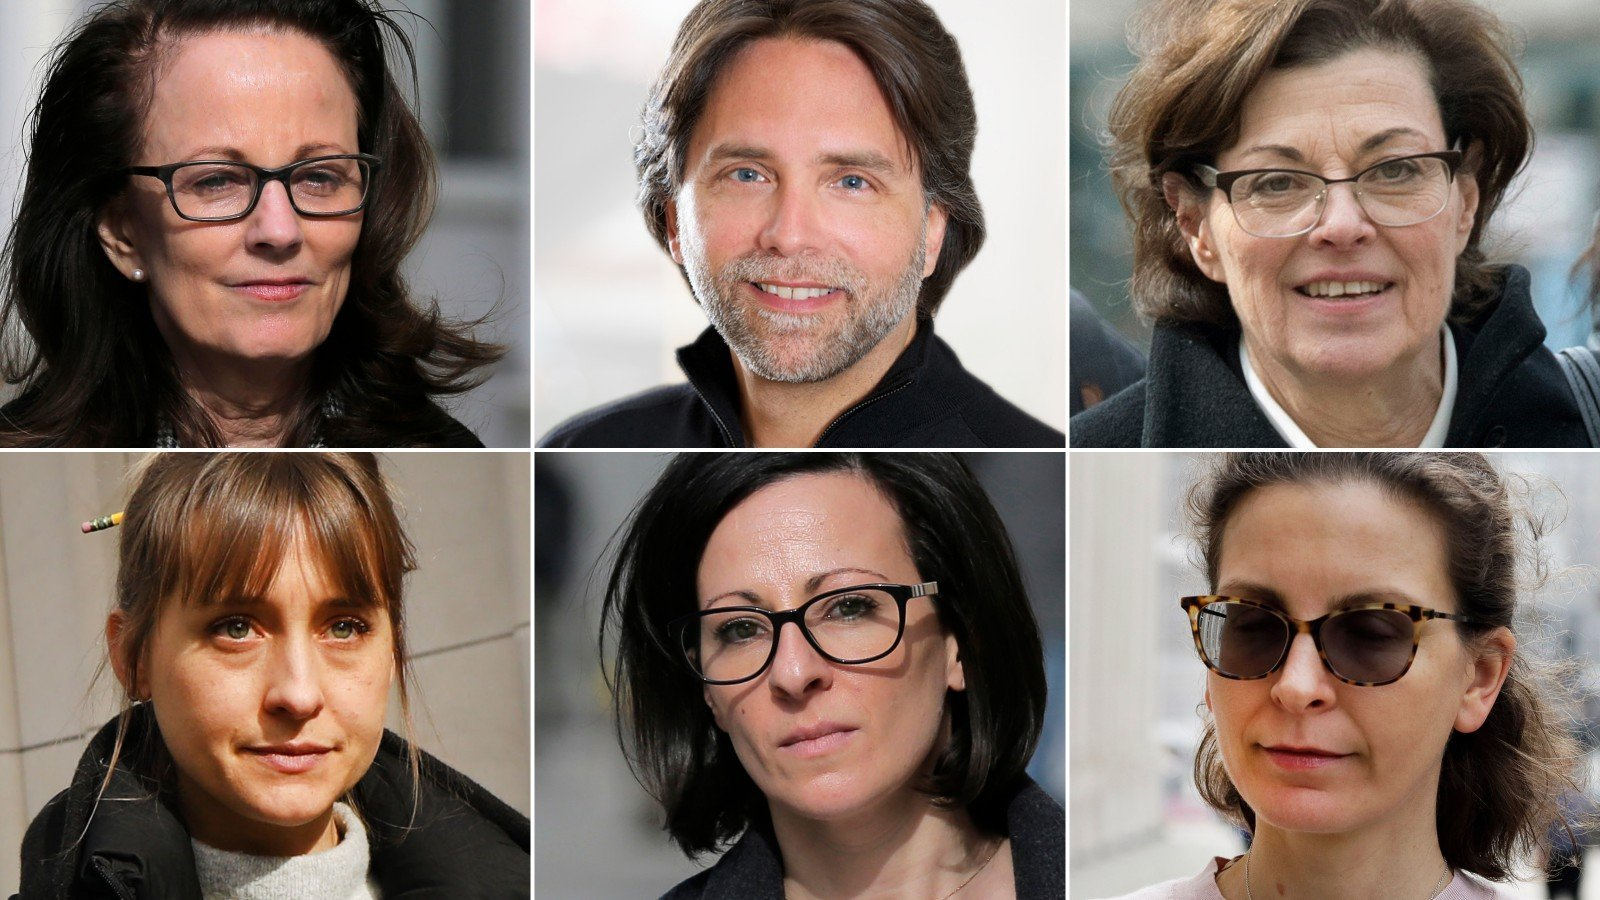 Nxivm founder could be sentenced to life today. A teen victim's father and others are lined up in his defense